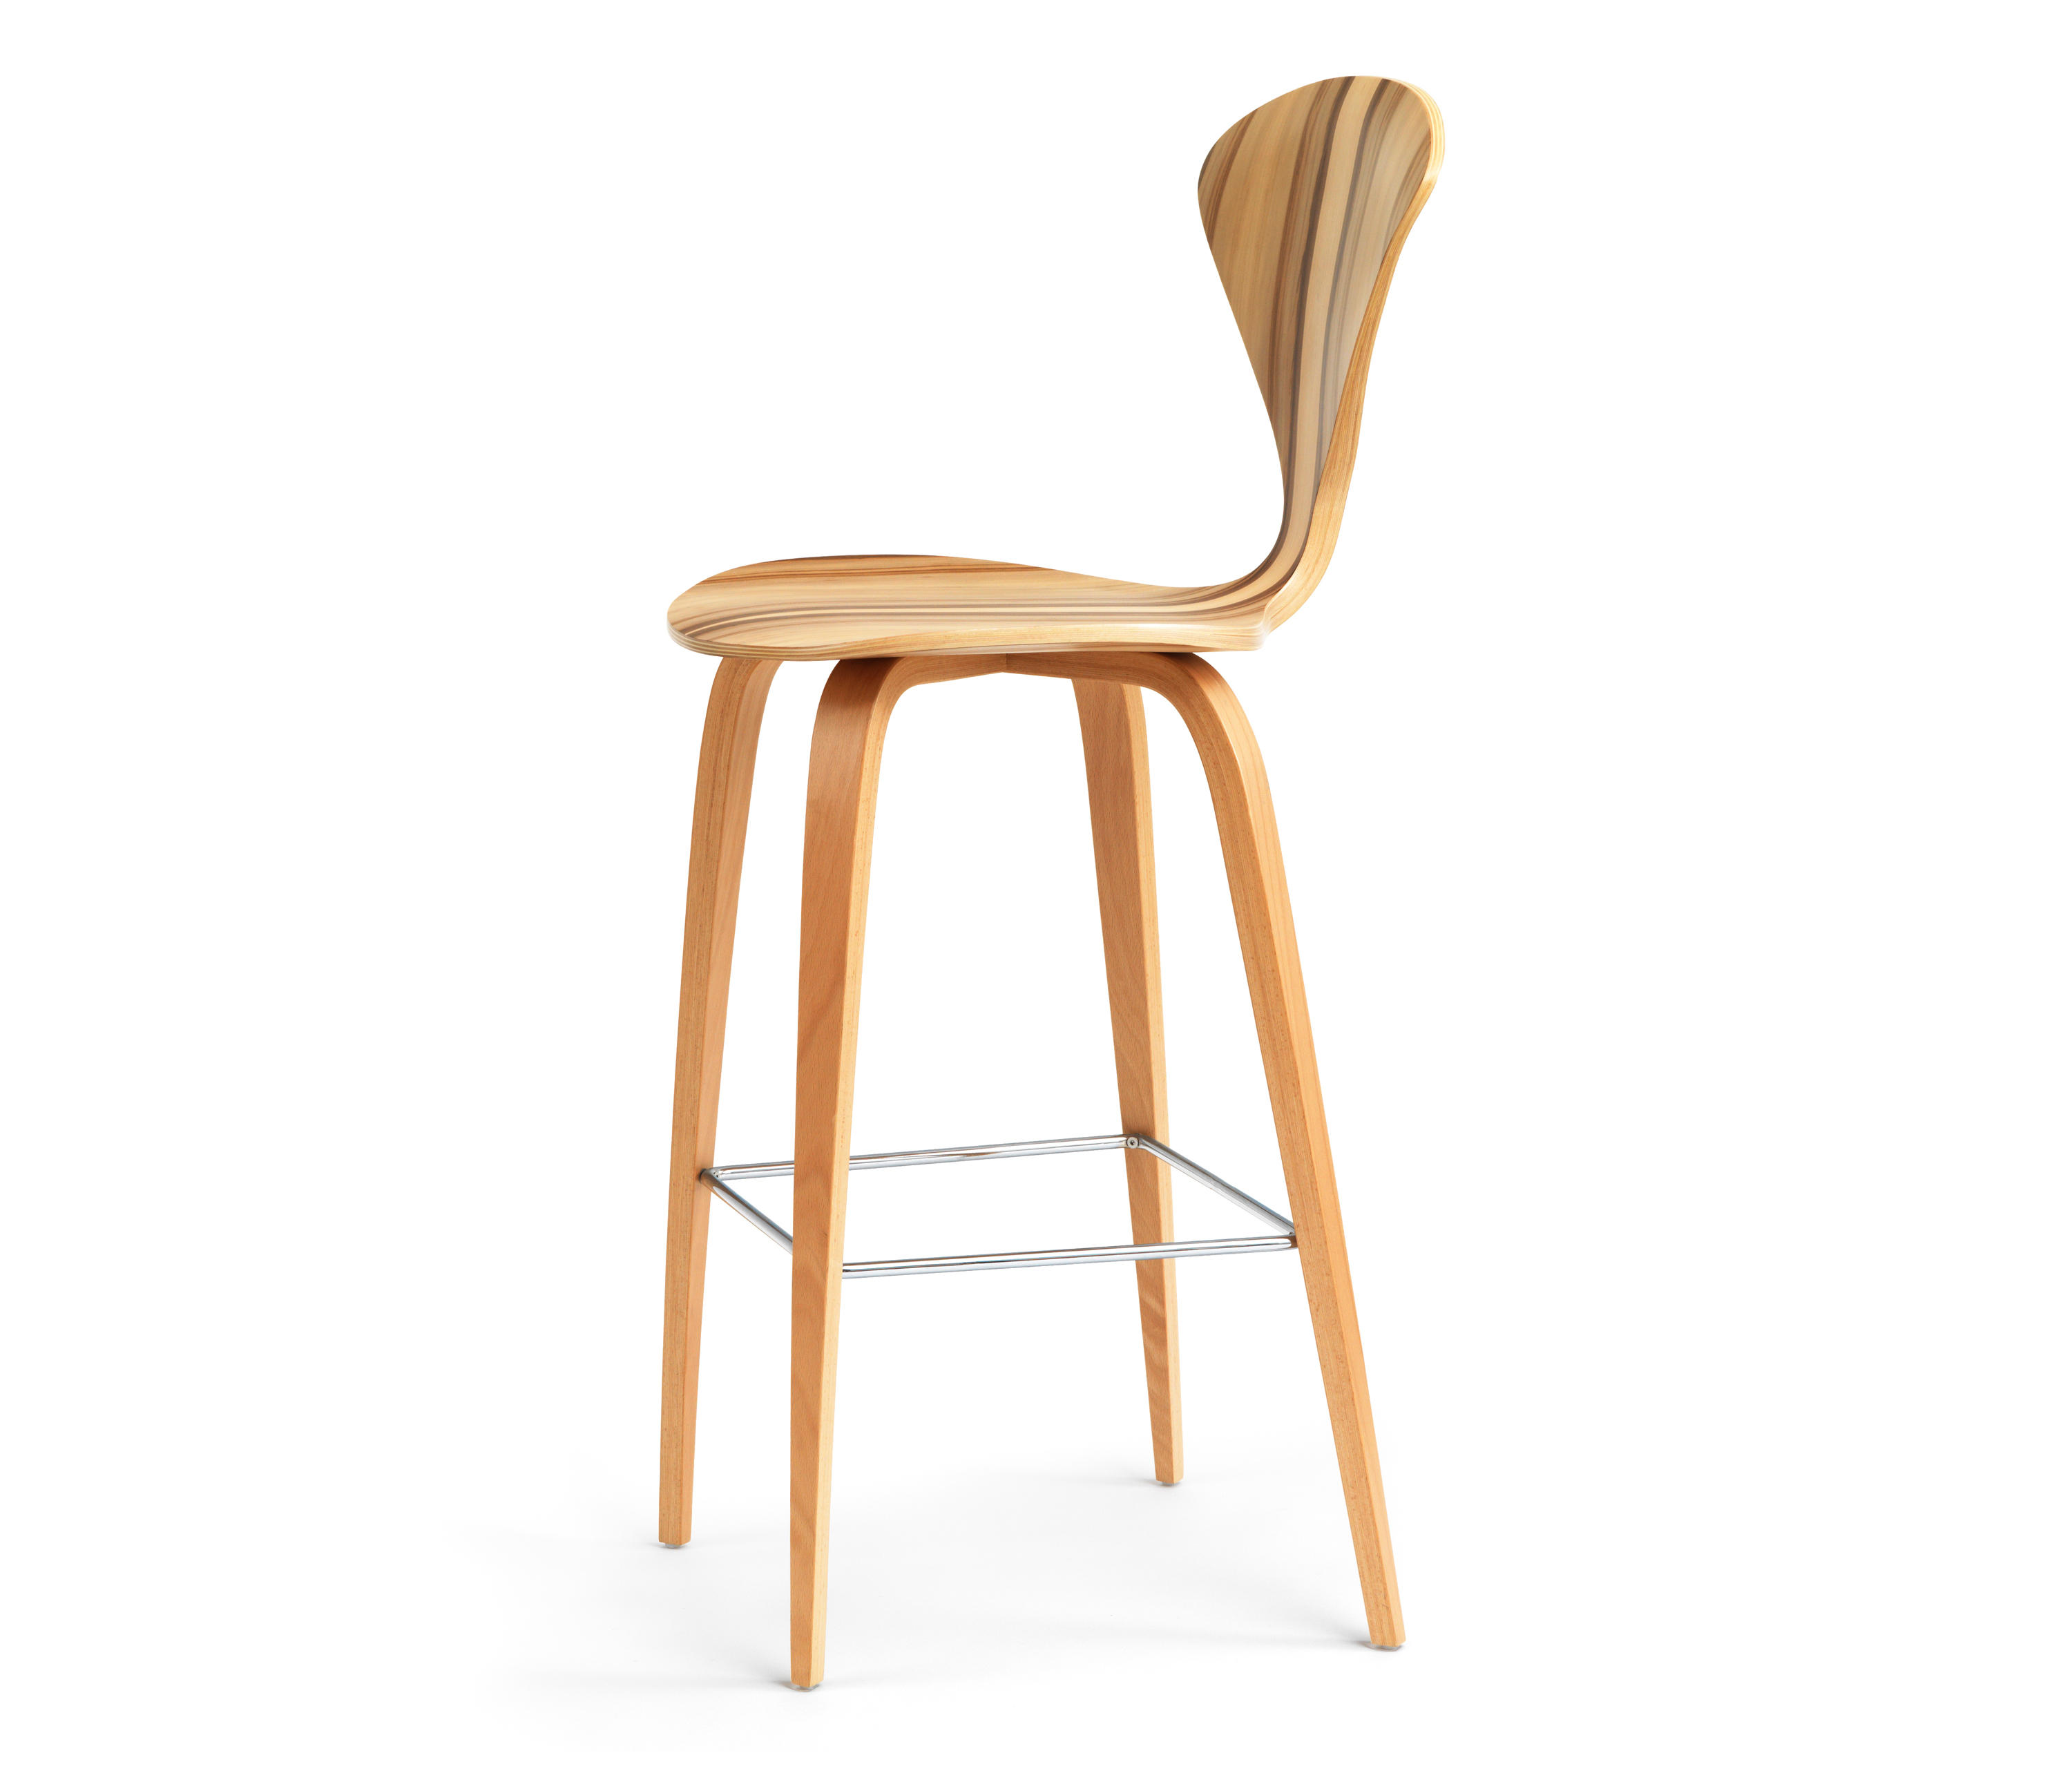 ... Cherner Wood Base Stool By Cherner | Bar Stools ...